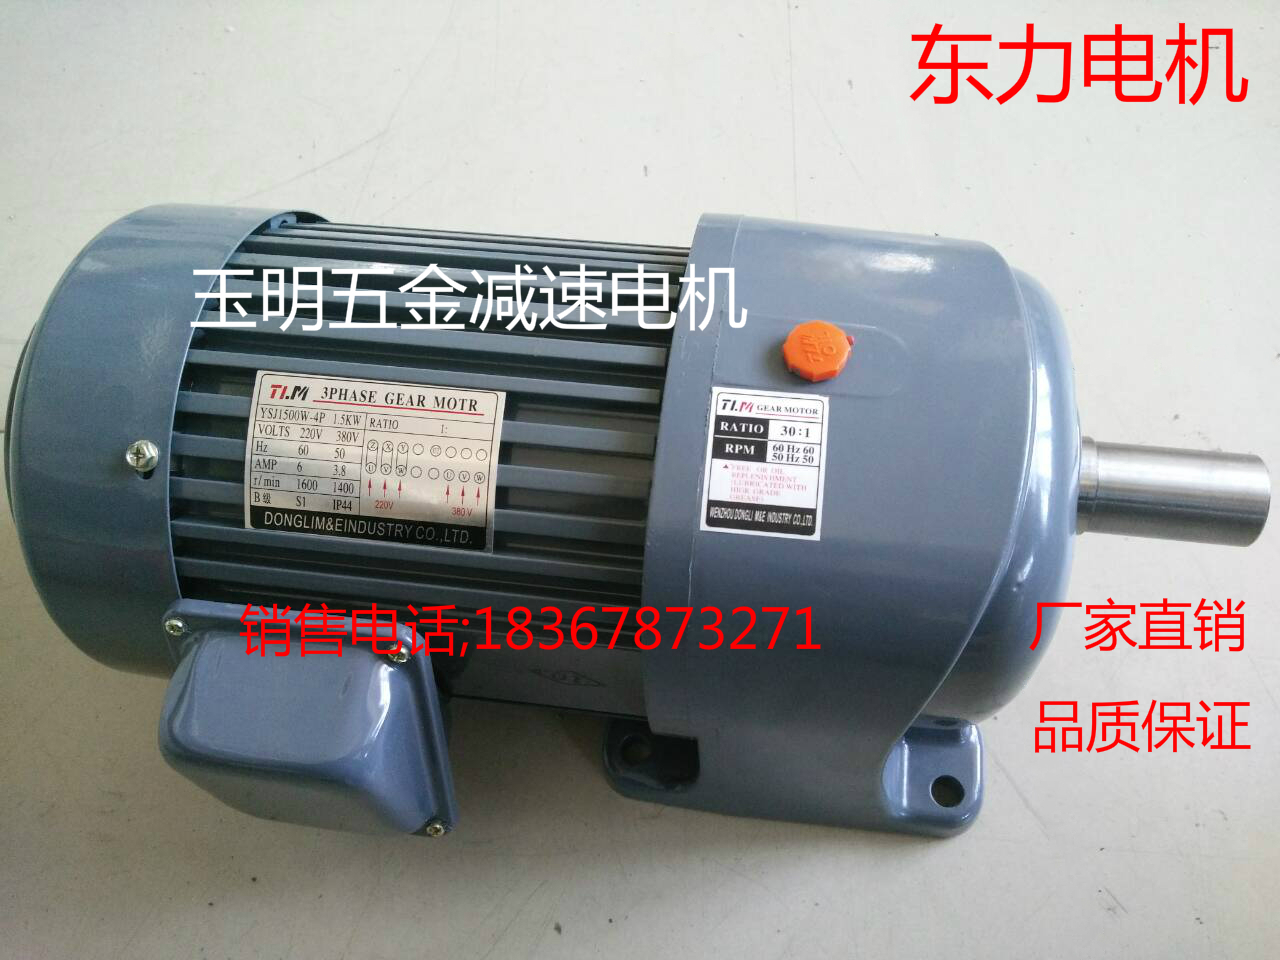 Three-phase 380V 220V geared motor 1.5KW speed motor 1500W vertical shaft 32 speed ratio 1:60 three phase general frequency converter 2 2kw 380v three phase motor warranty 18 delta